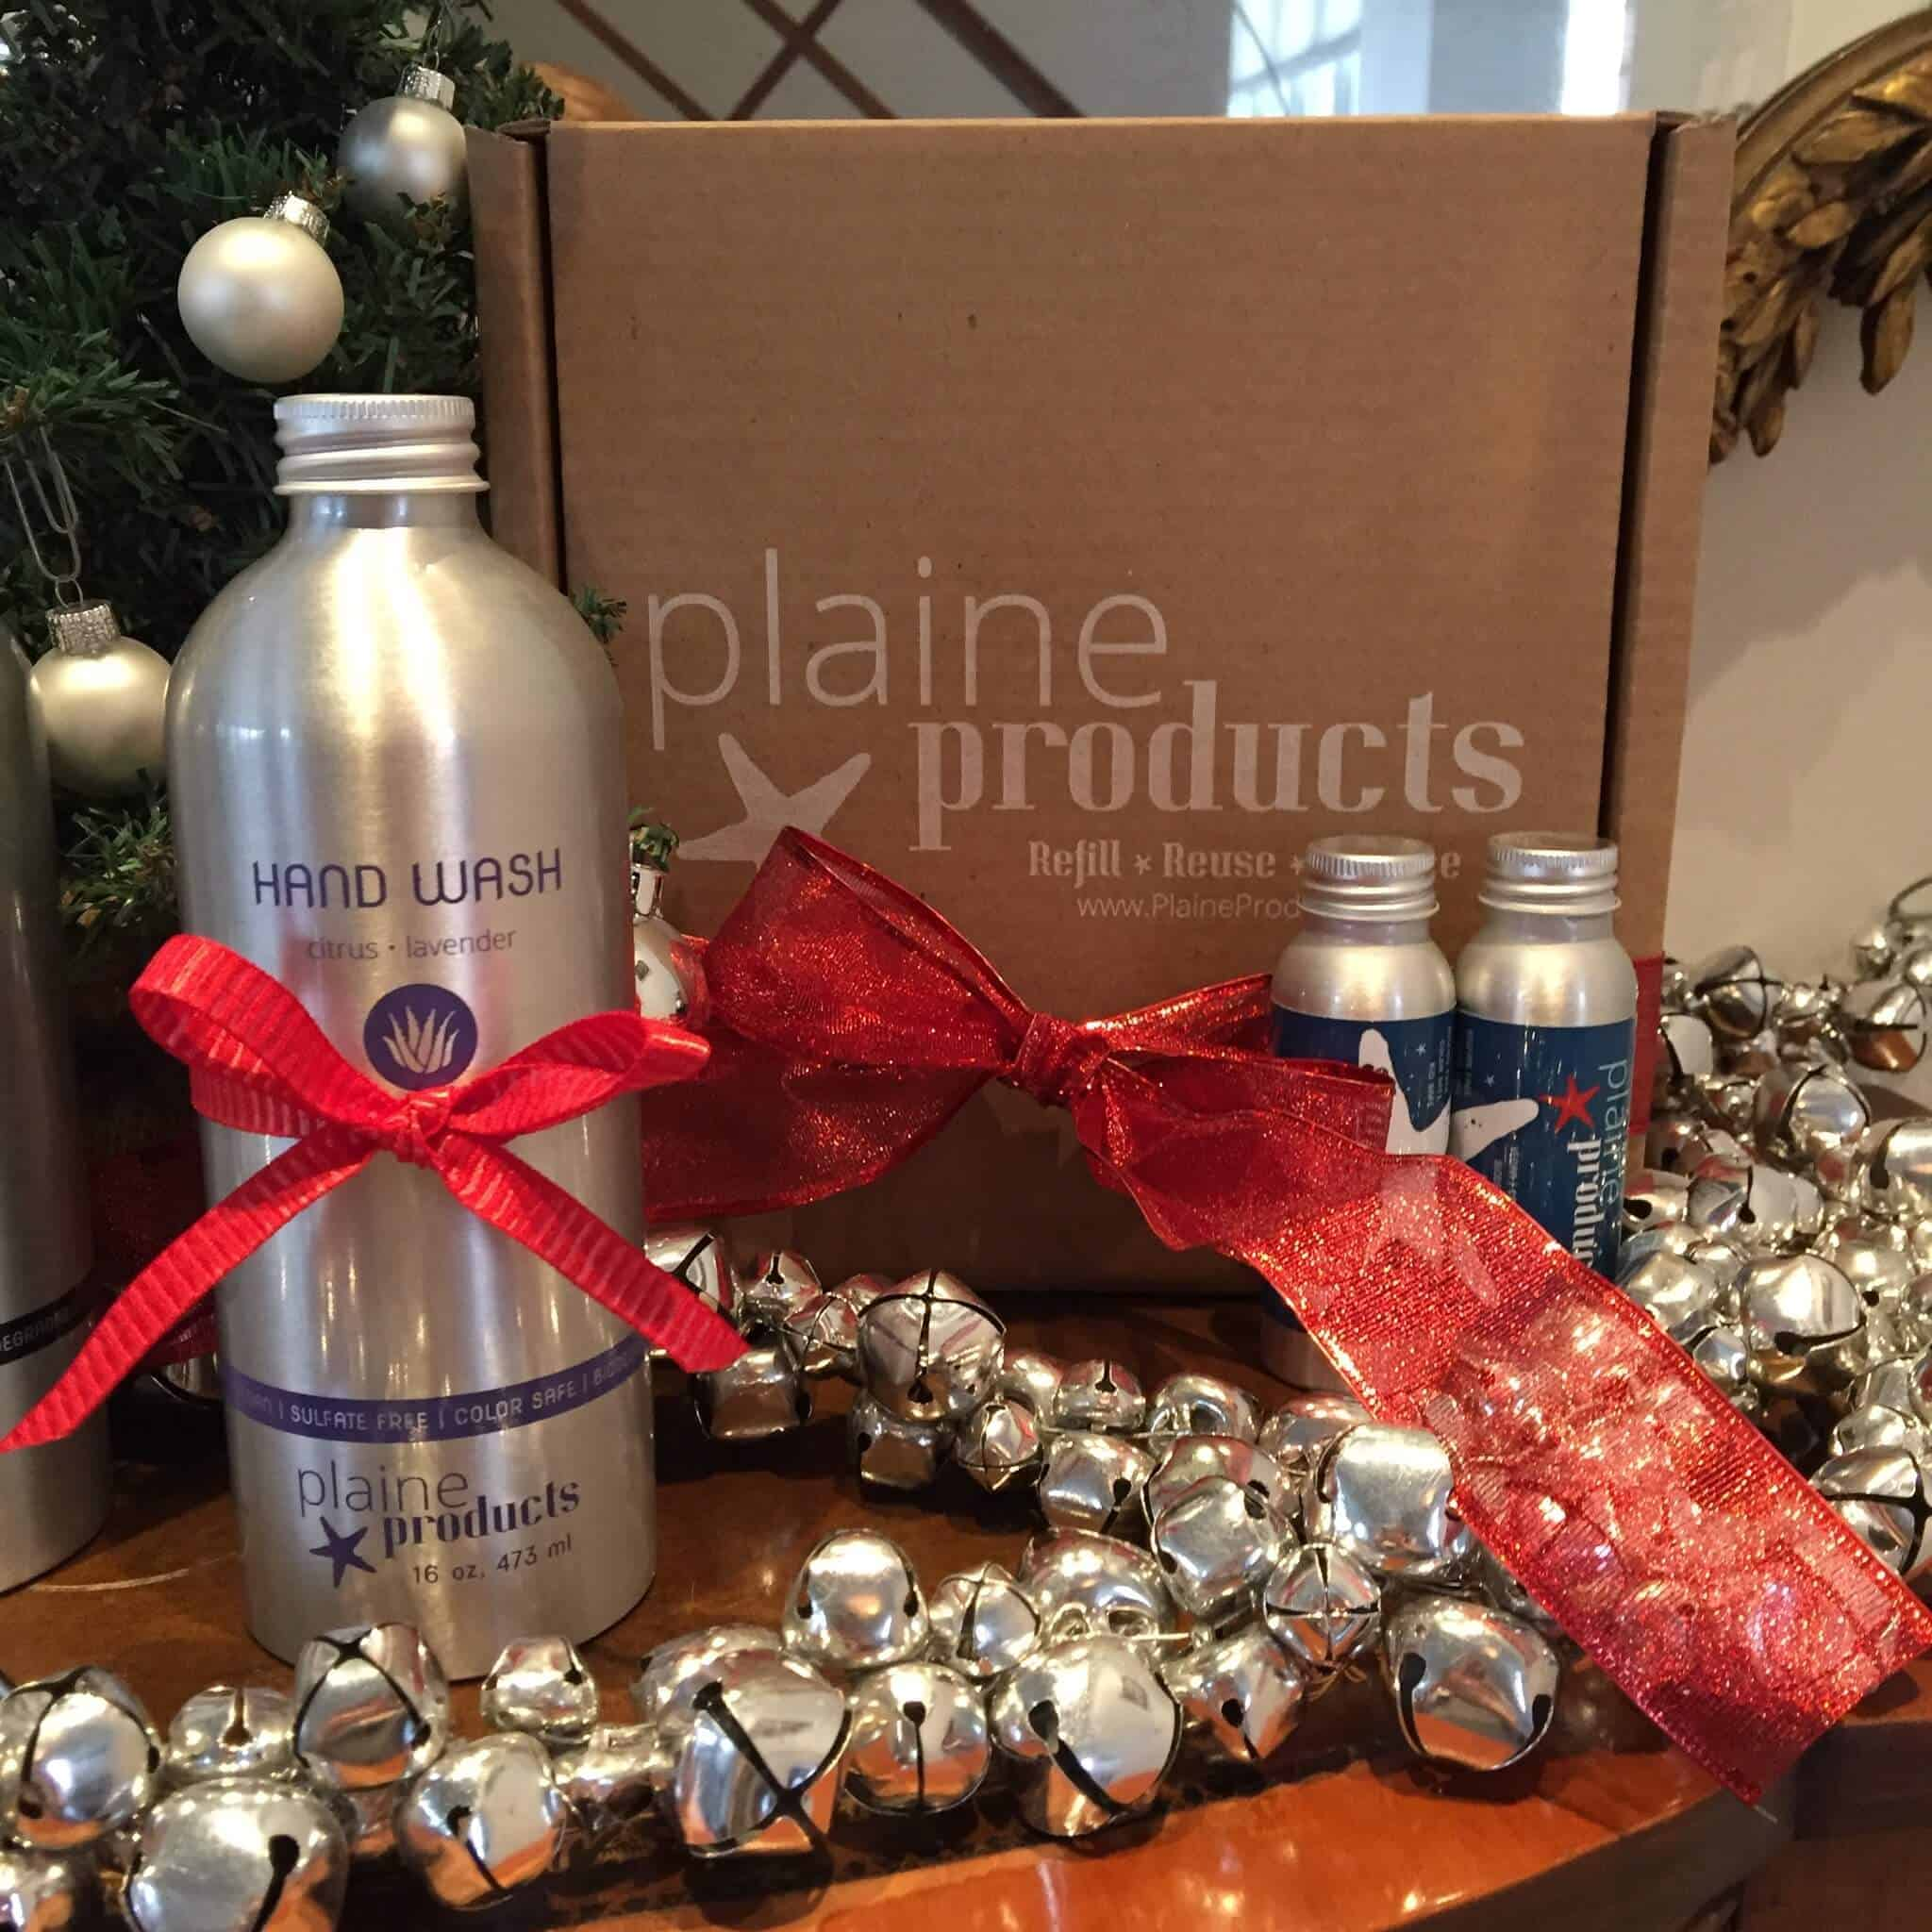 6 People for Whom Plaine Products is a Great Gift Idea